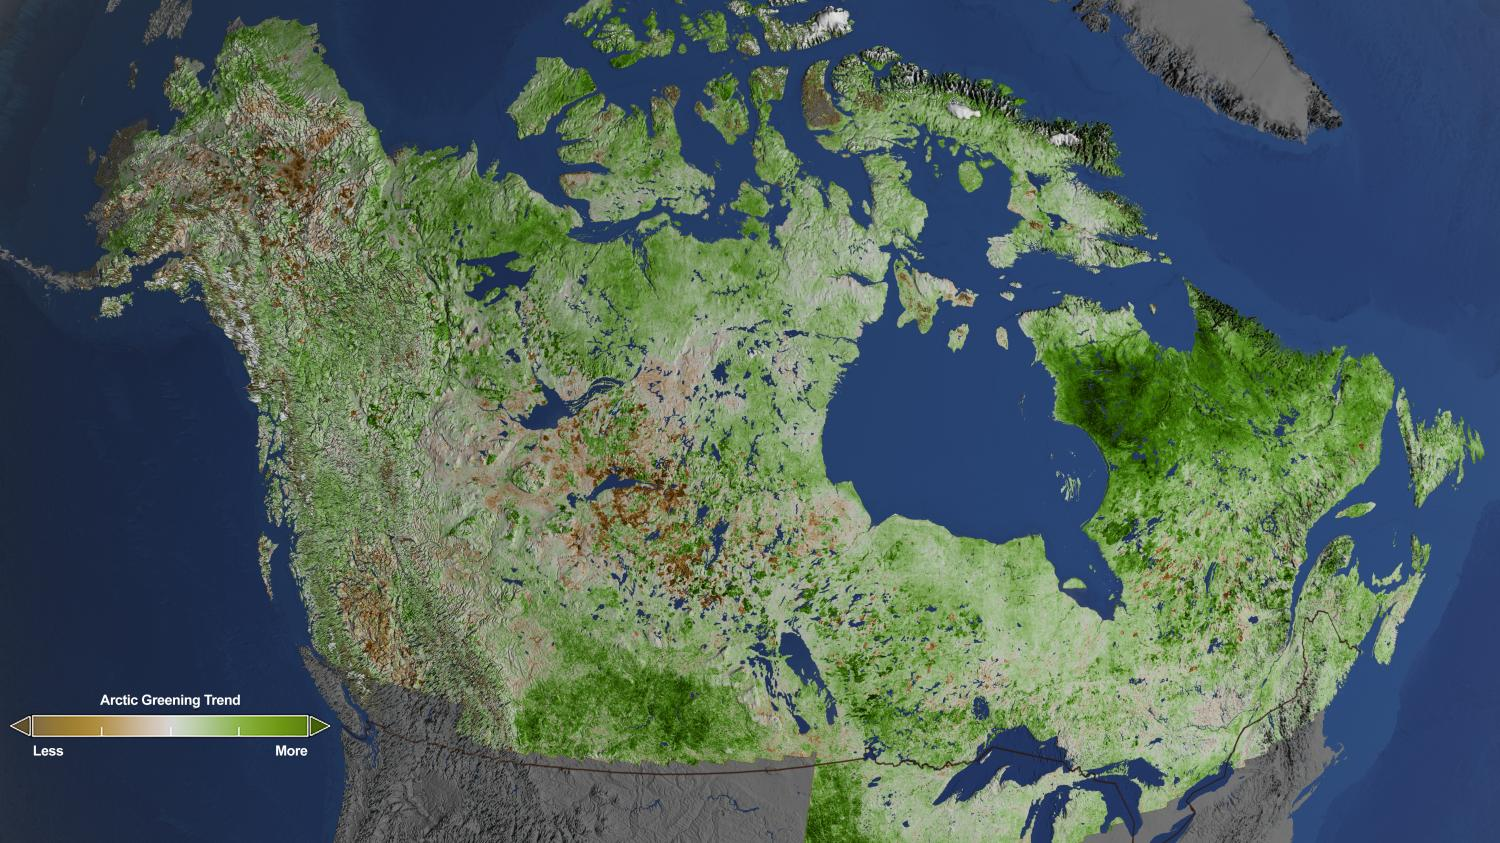 Using 29 years of data from Landsat satellites, researchers at NASA have found extensive greening in the vegetation across Alaska and Canada. Rapidly increasing temperatures in the Arctic have led to longer growing seasons and changing soils for the plants. Scientists have observed grassy tundras changing to scrublands, and shrub growing bigger and denser. From 1984–2012, extensive greening has occurred in the tundra of Western Alaska, the northern coast of Canada, and the tundra of Quebec and Labrador. (Cindy Starr / NASA's Goddard Space Flight Center)